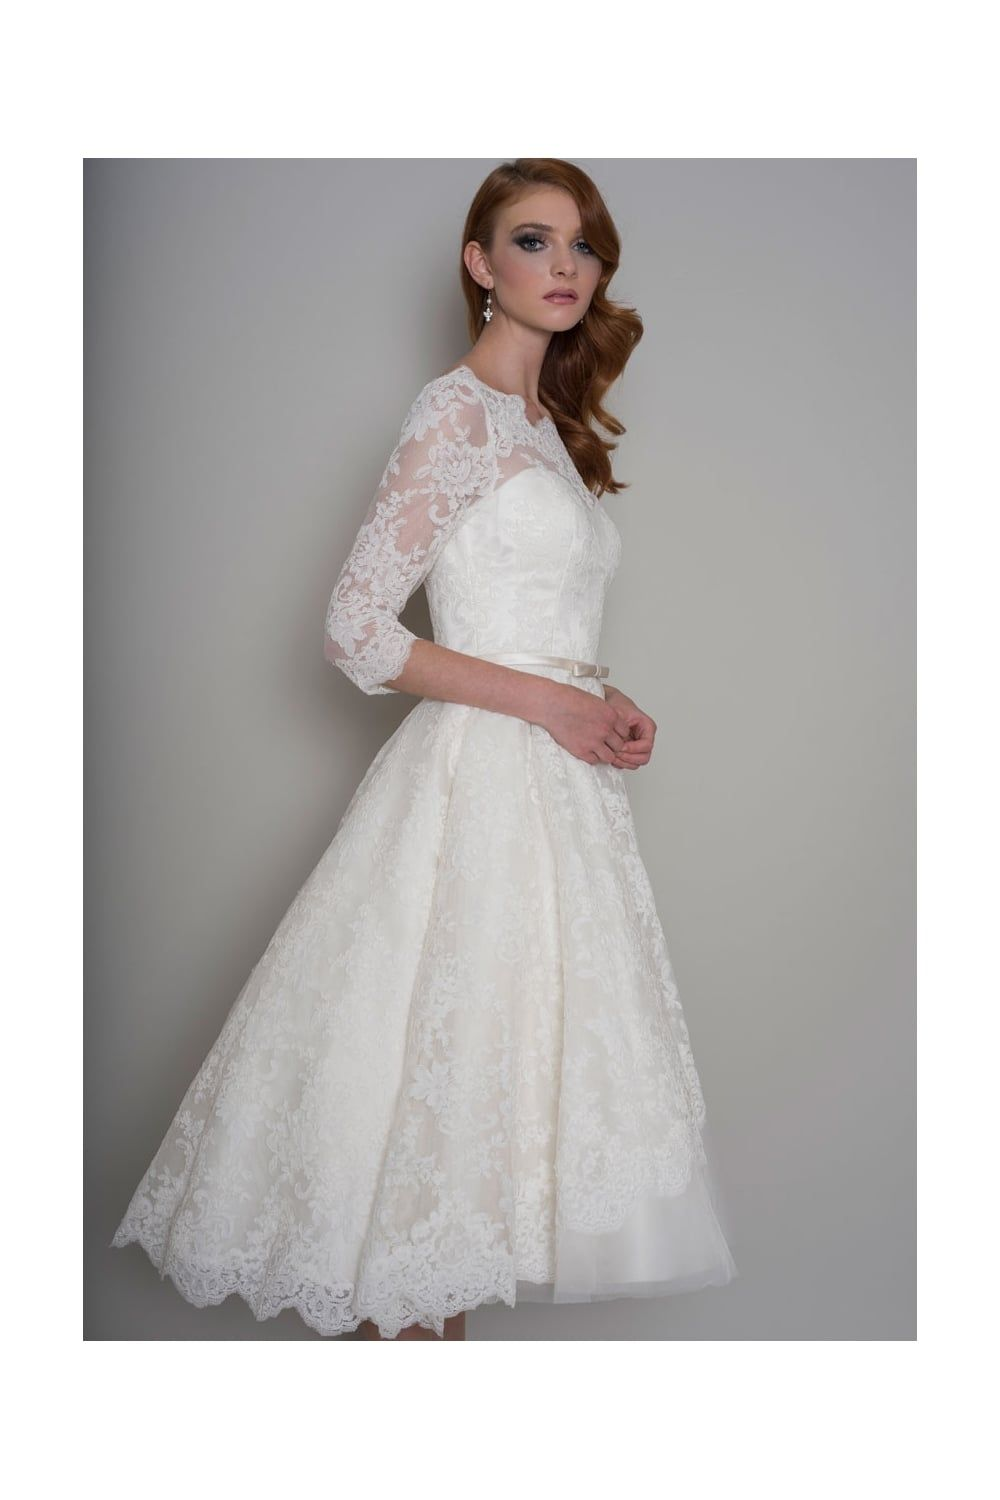 Loulou delilah tea length vintage s wedding dress with sleeves